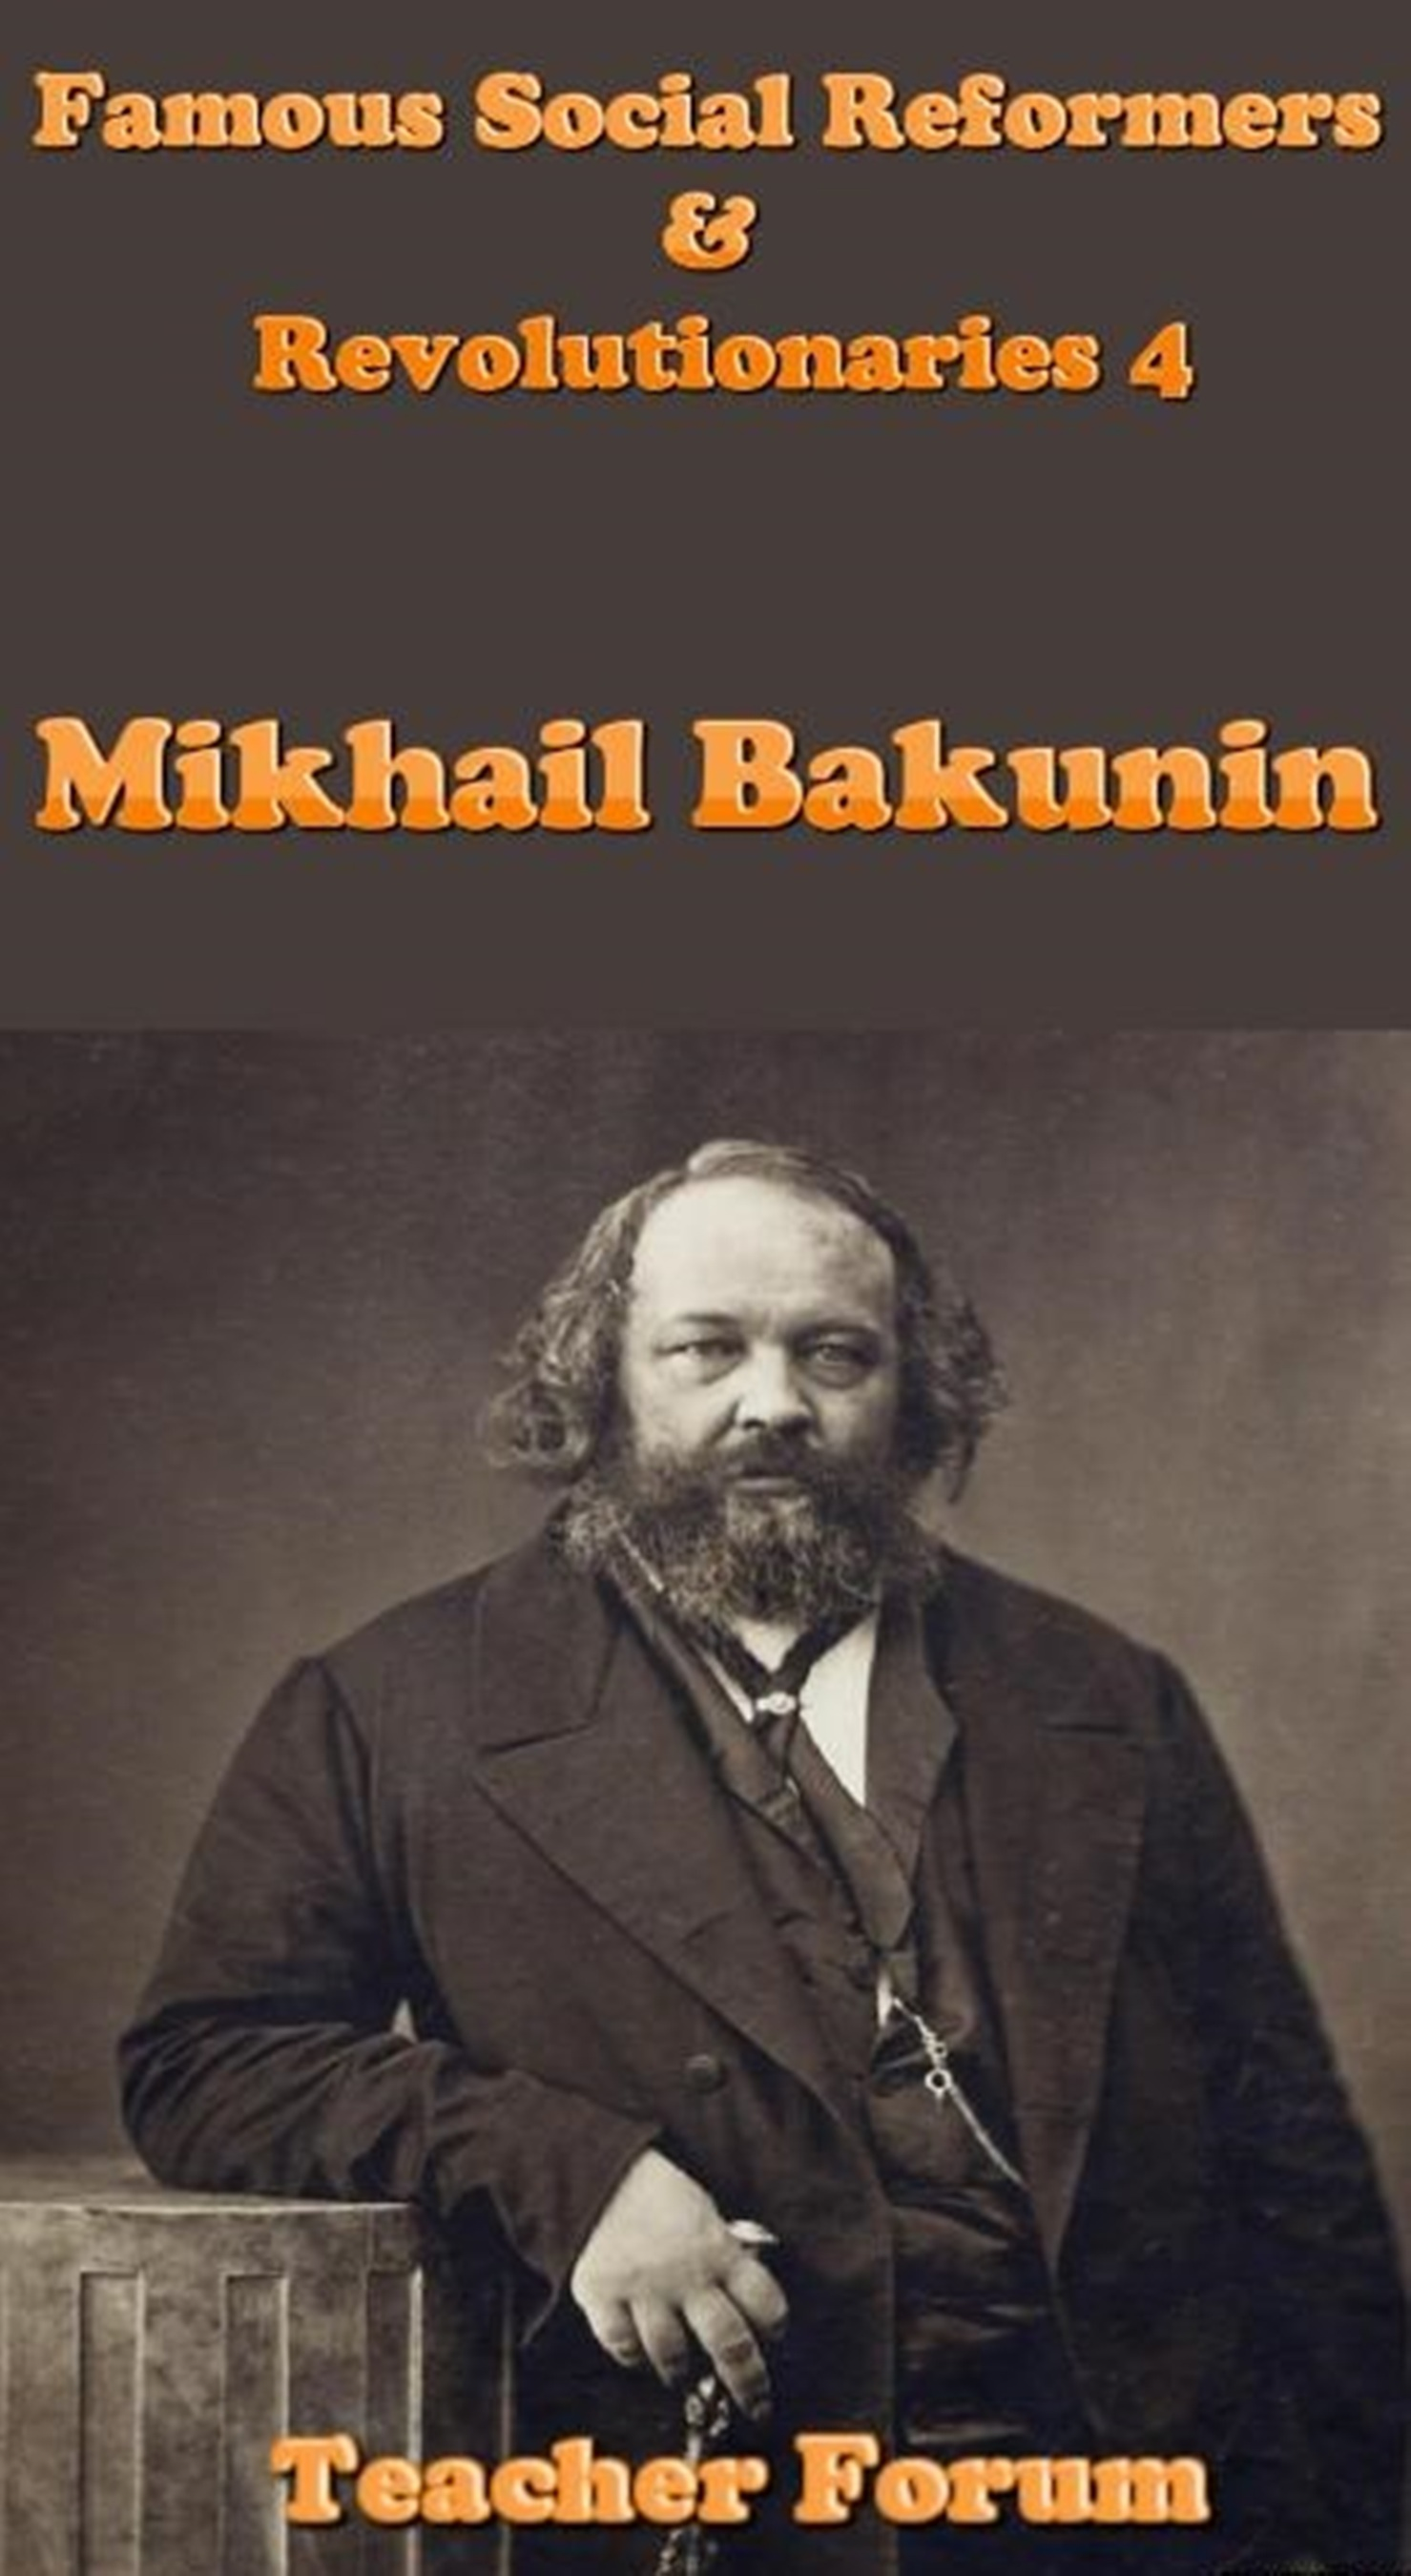 selected writings from mikhail bakunin essays on anarchism Qualitatively the best collection of bakunin's writings that currently exists, this selection presents the reader with some of bakunin's most.